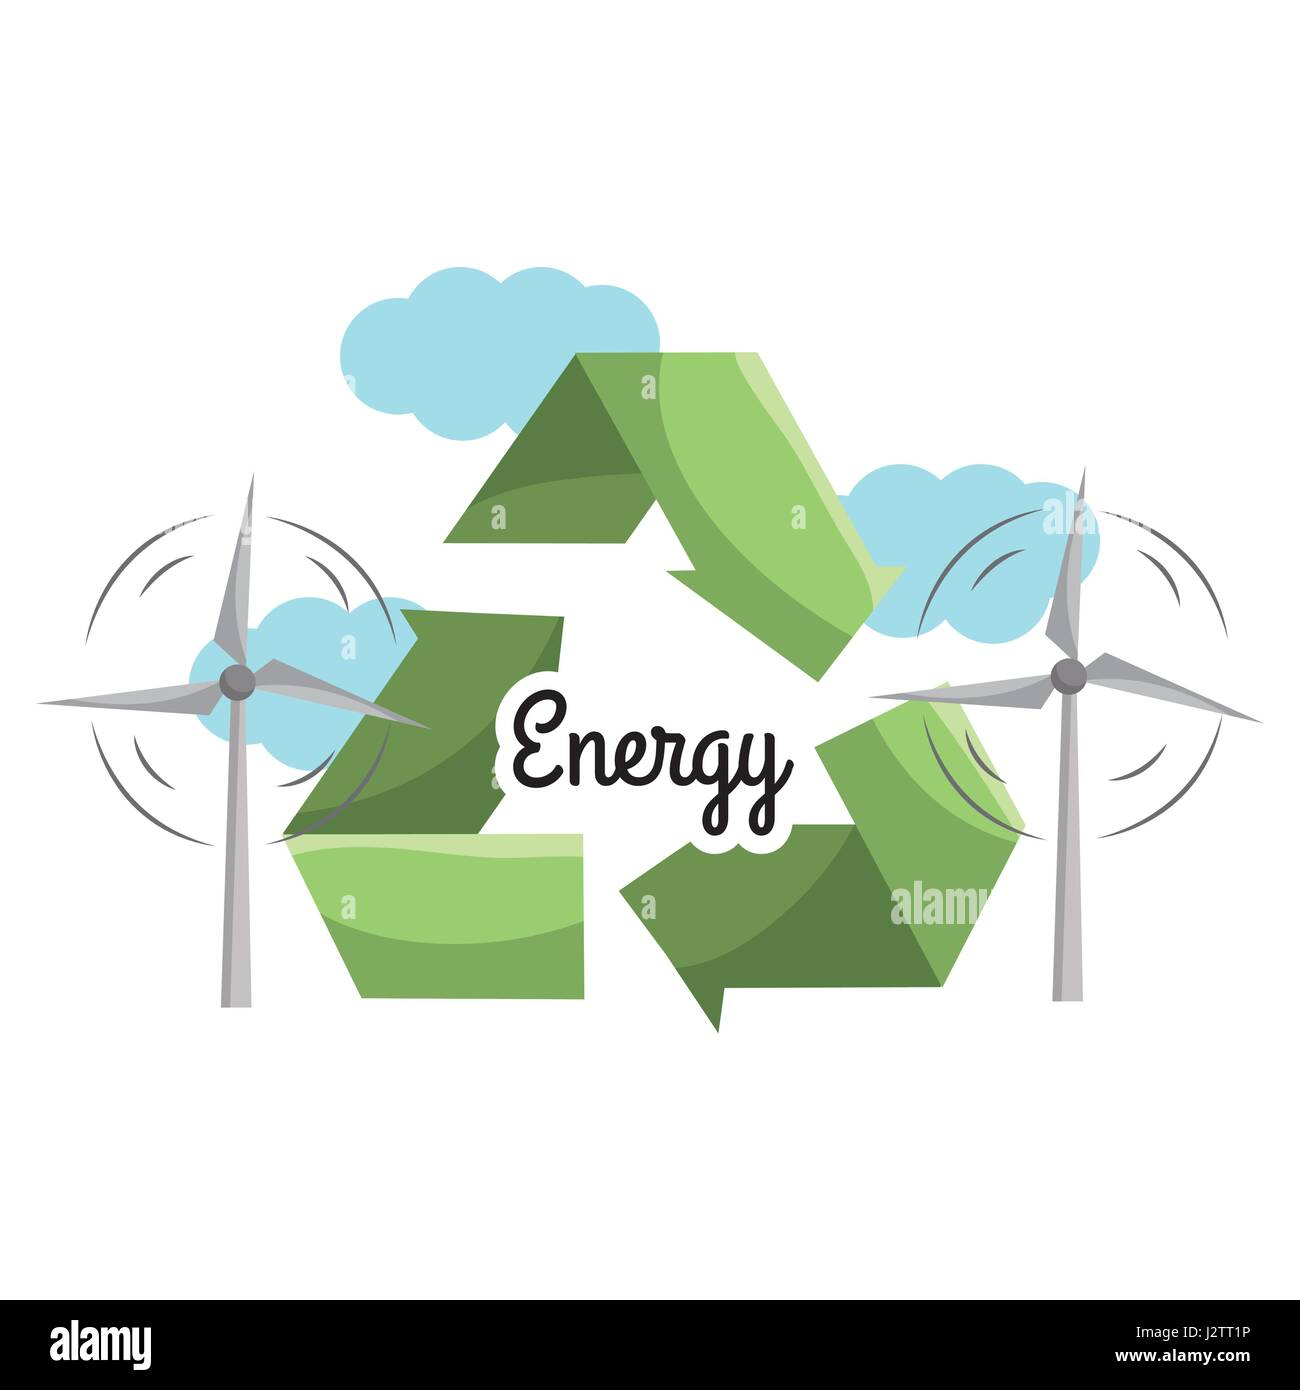 windpower with reduce, reuse and recycle symbol - Stock Image